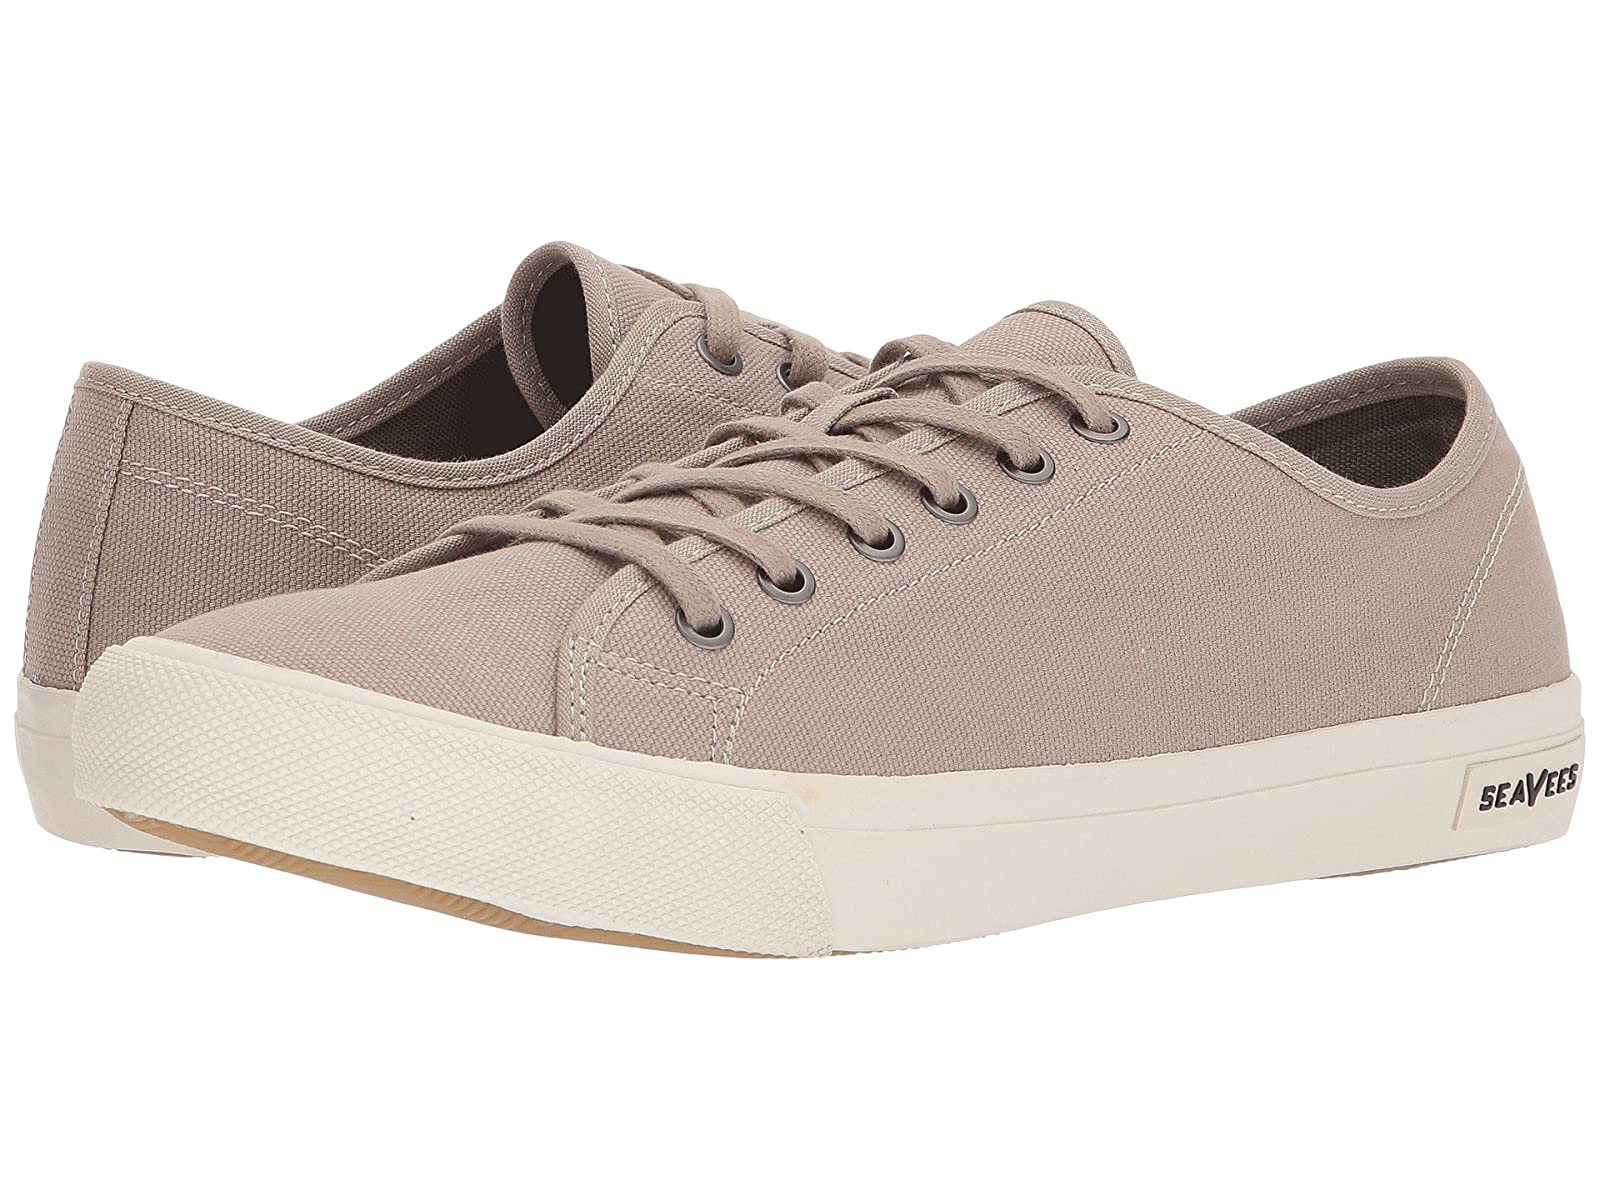 Men's/Women's:SeaVees 06/67 06/67 Men's/Women's:SeaVees Monterey Standard: New Style a0c55d